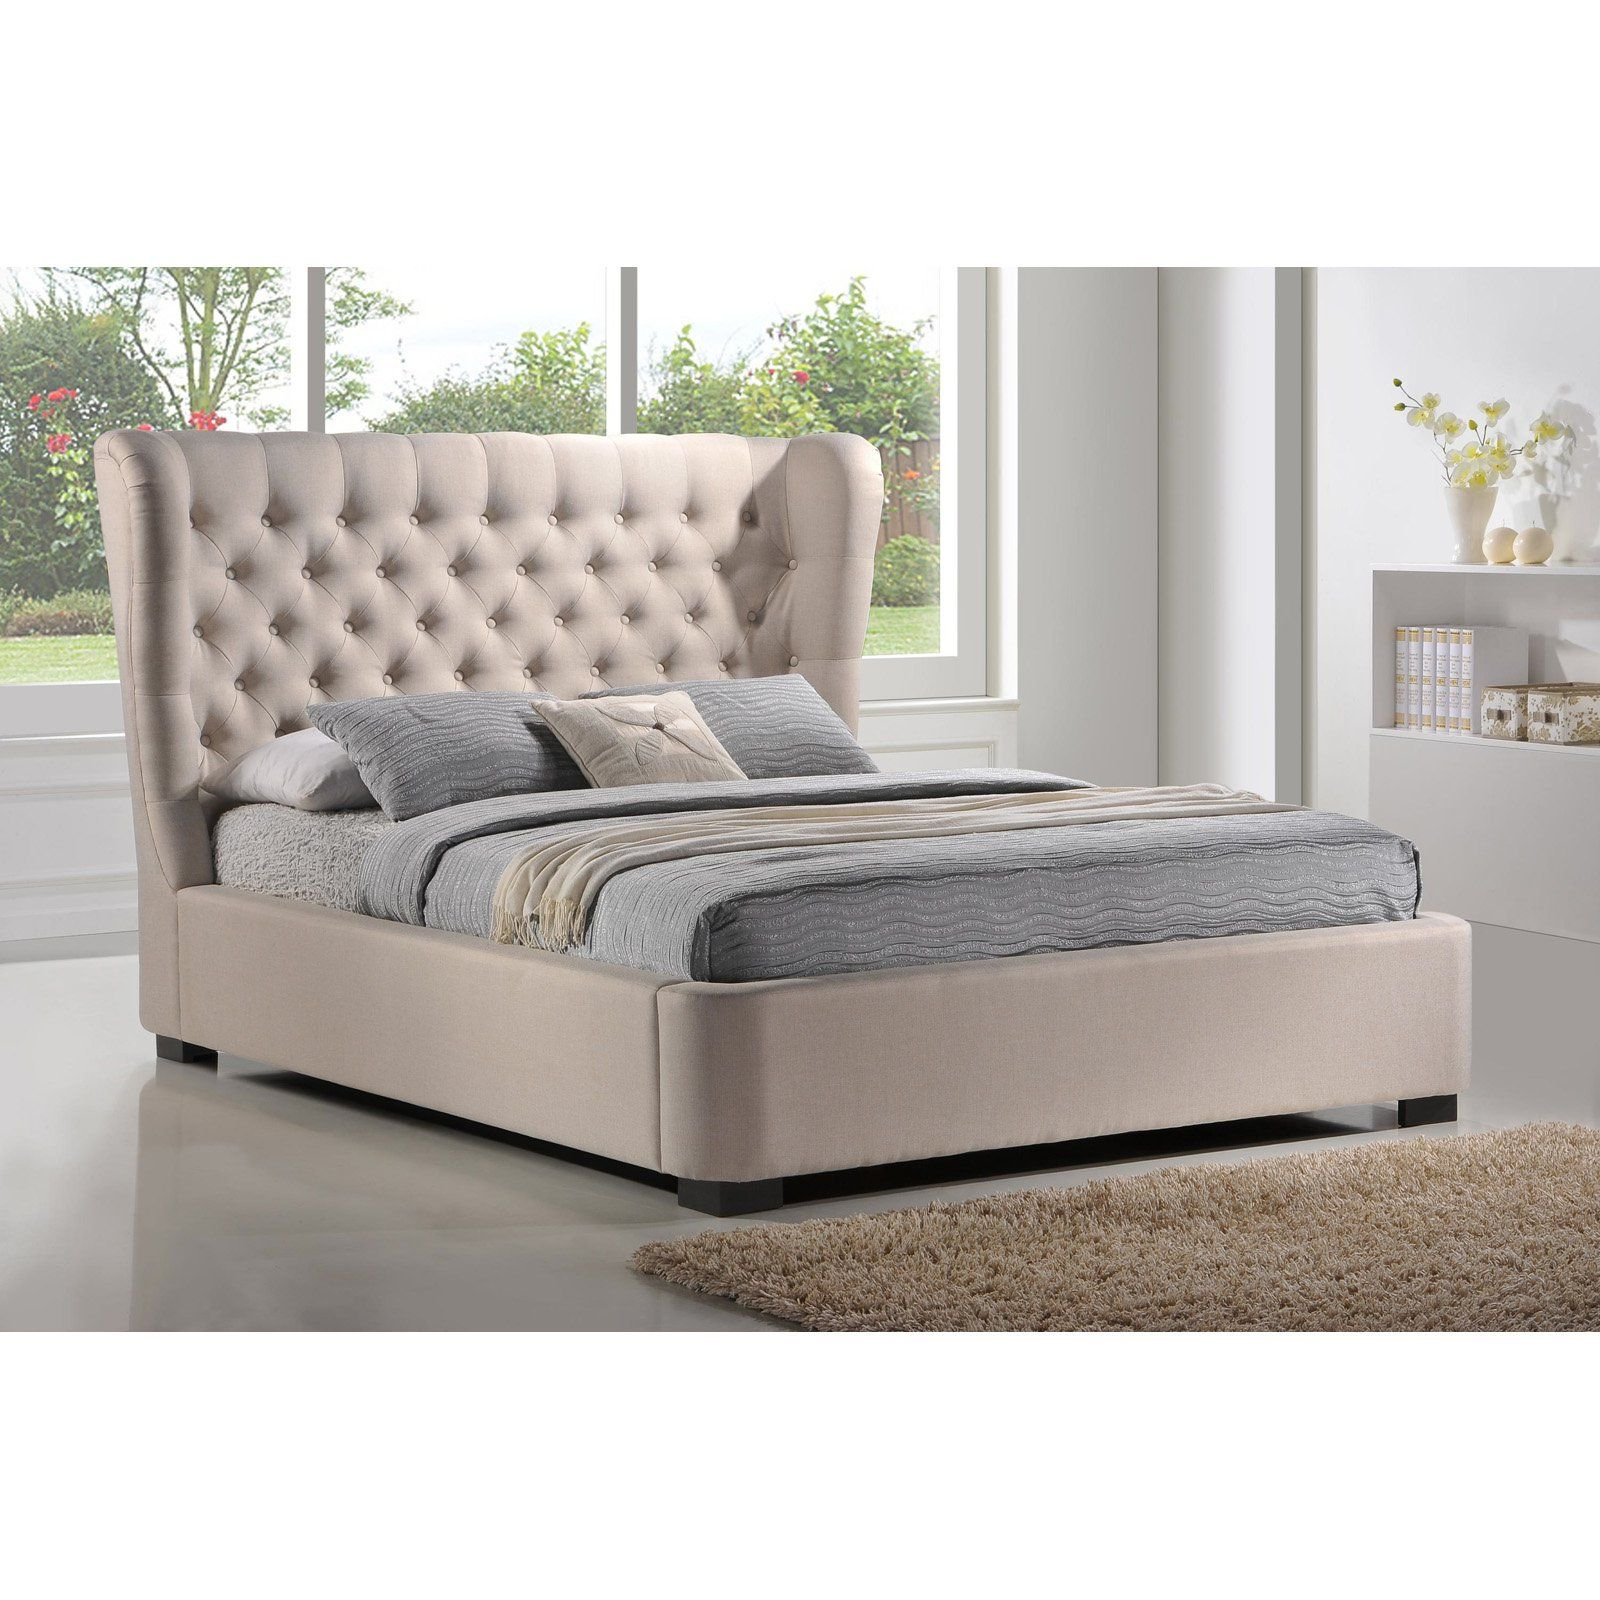 Luxeo Manchester Upholstered Platform Bed Khaki In 2019